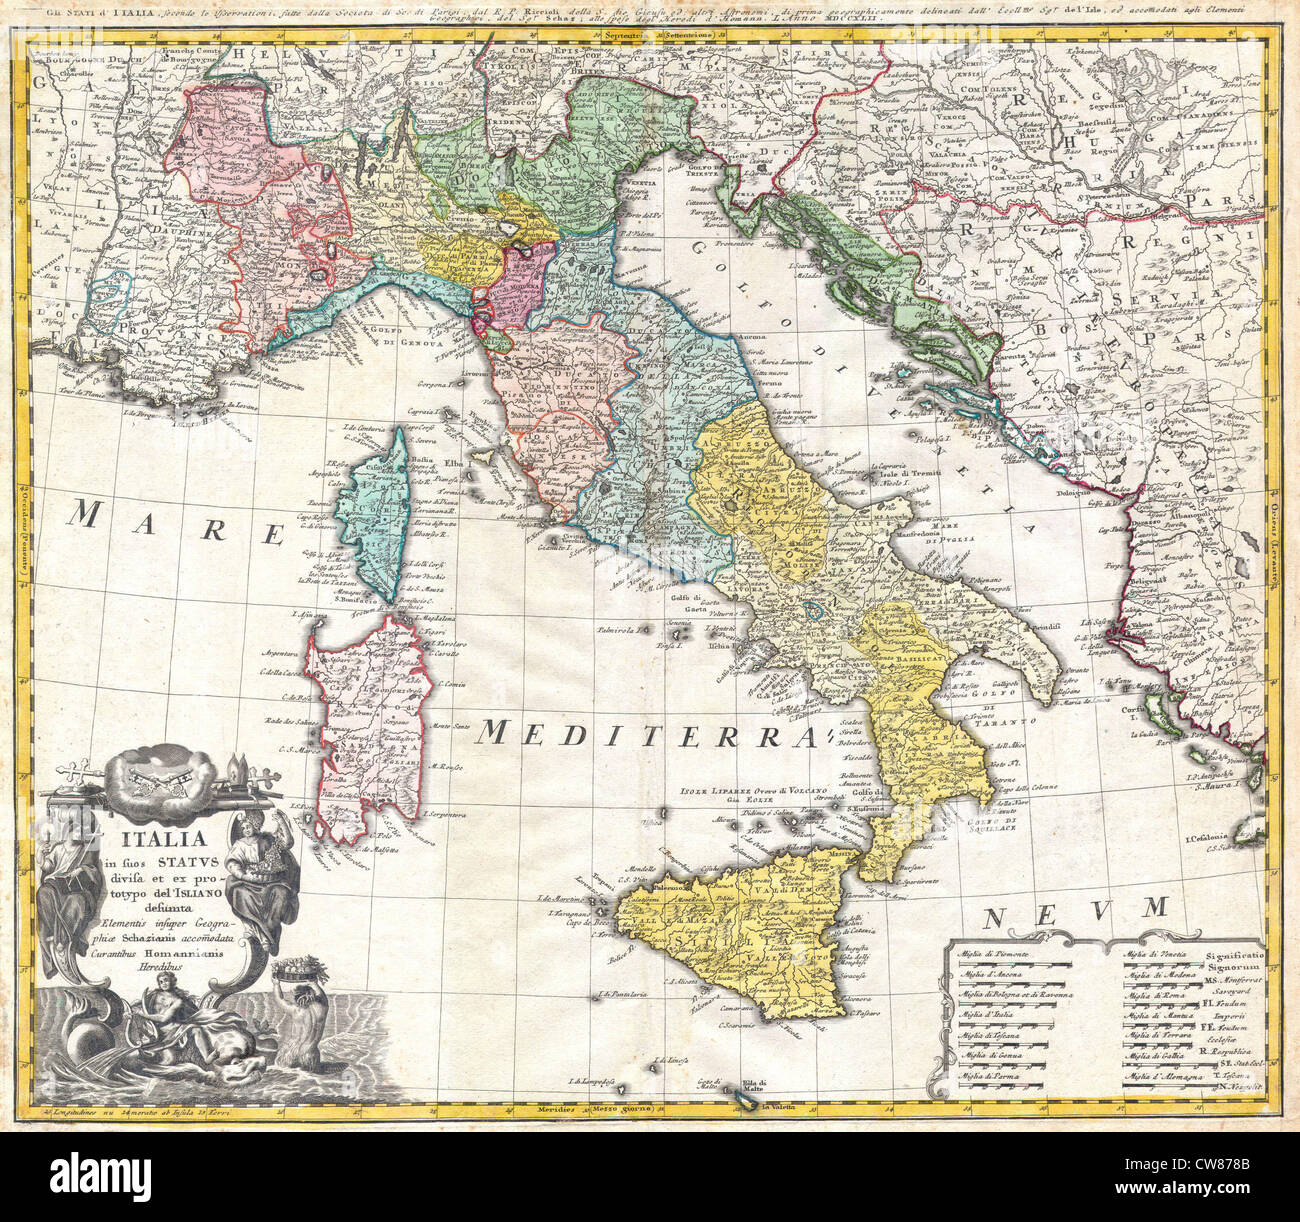 1742 Homann Heirs Map of Italy - Stock Image